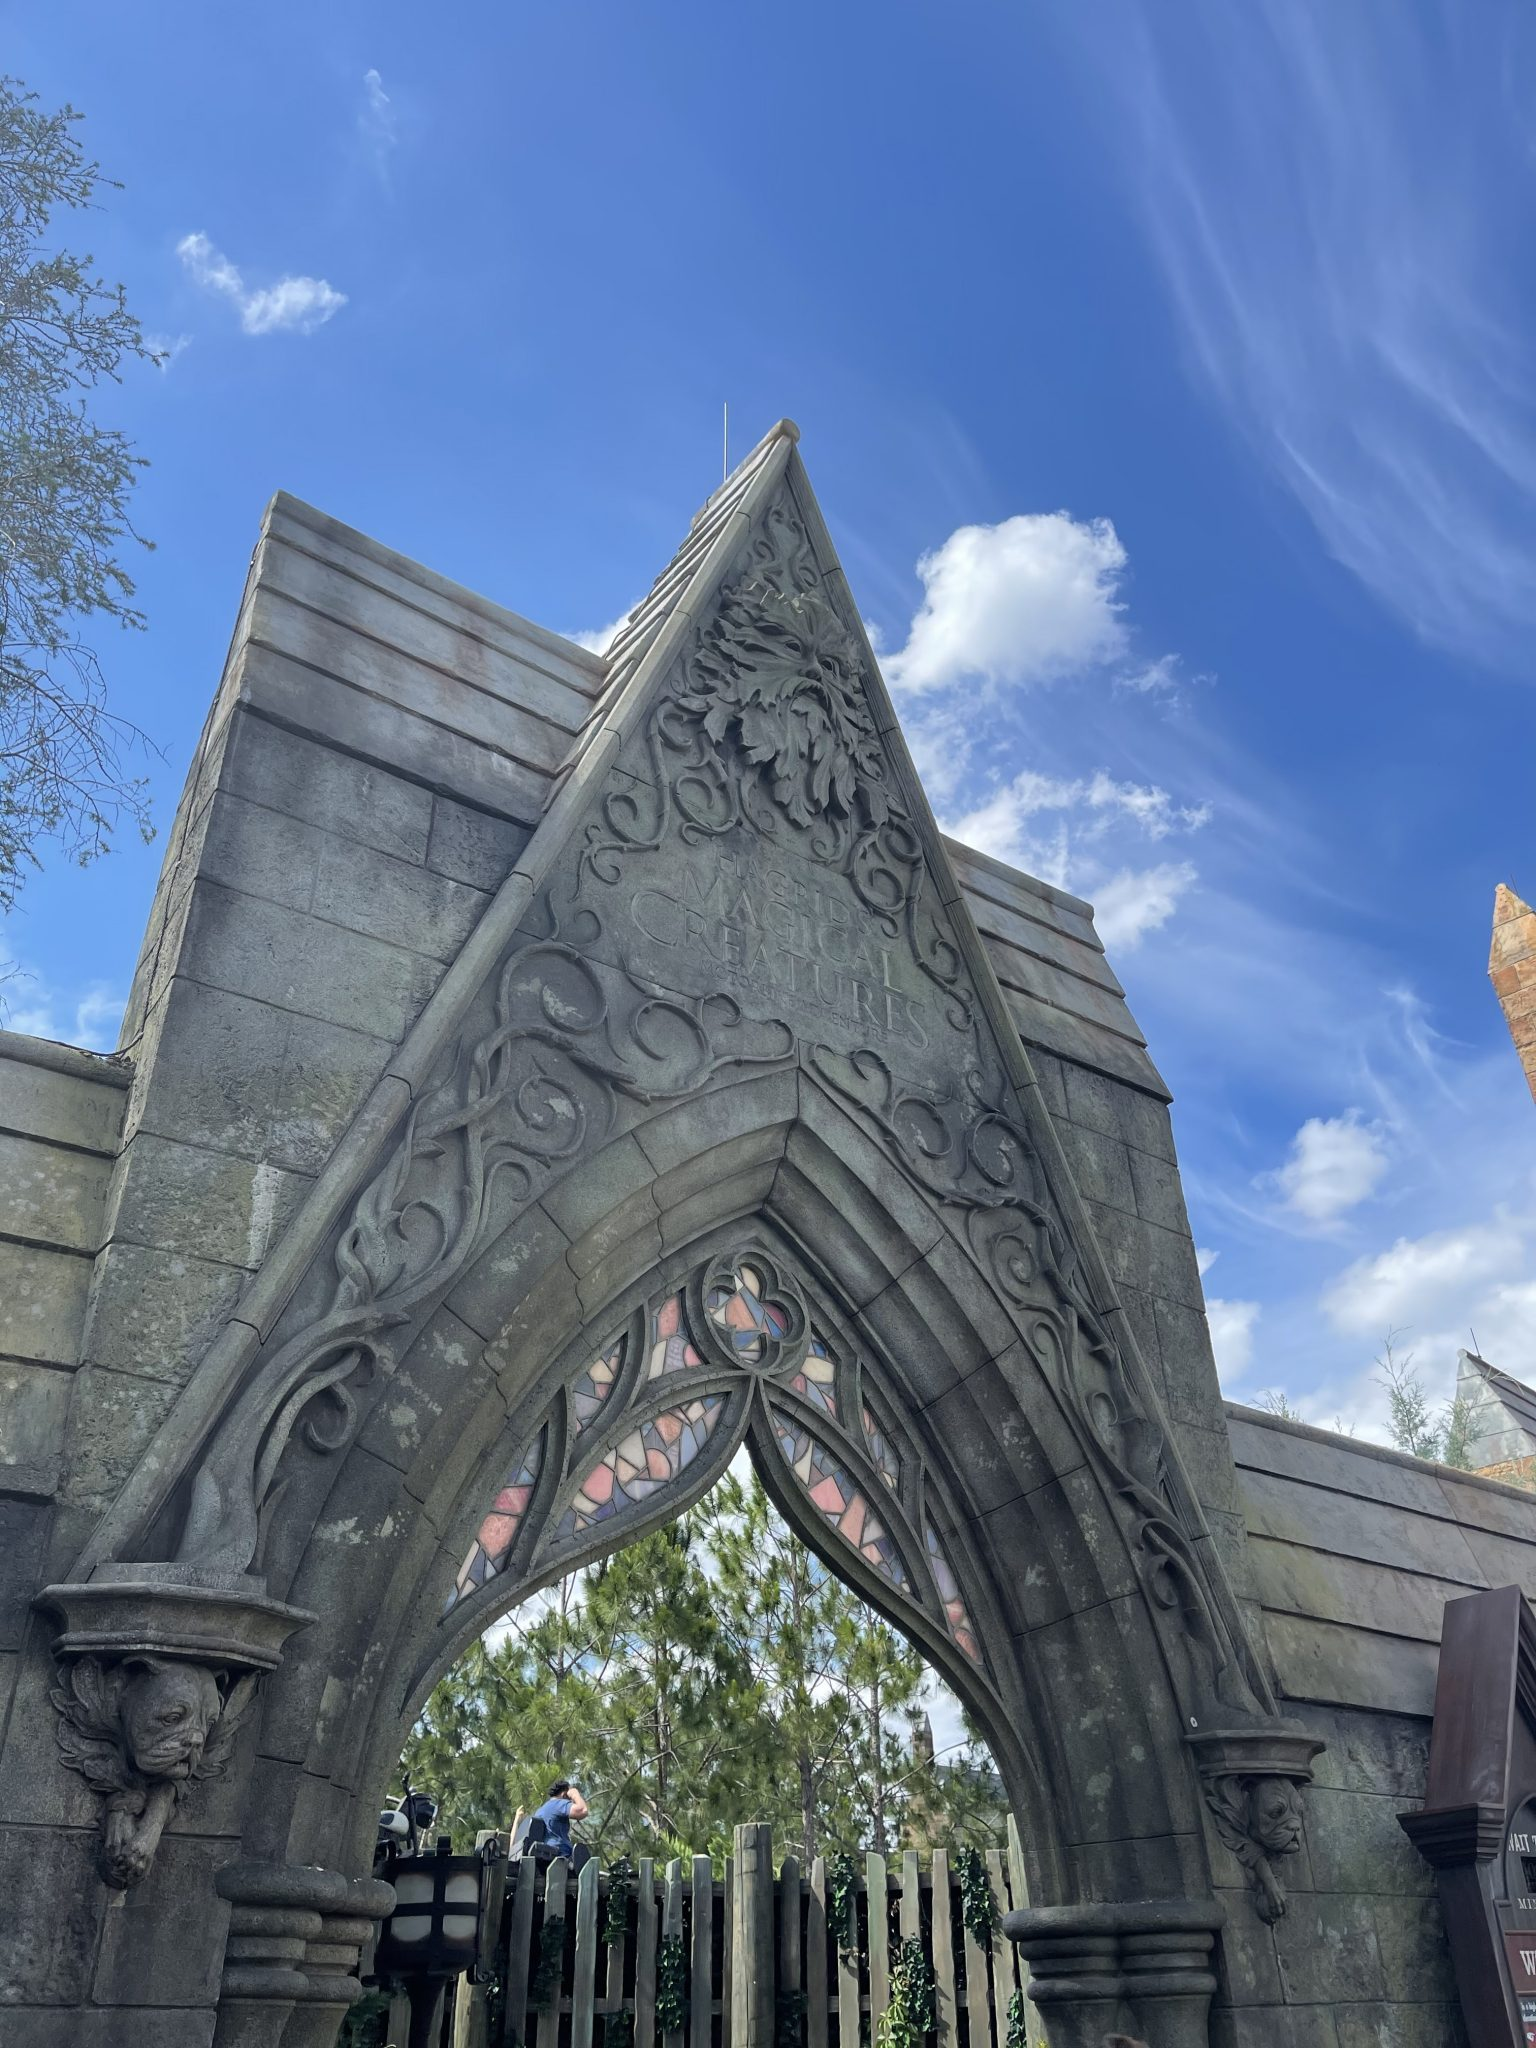 Insider's Guide to the Wizarding World of Harry Potter